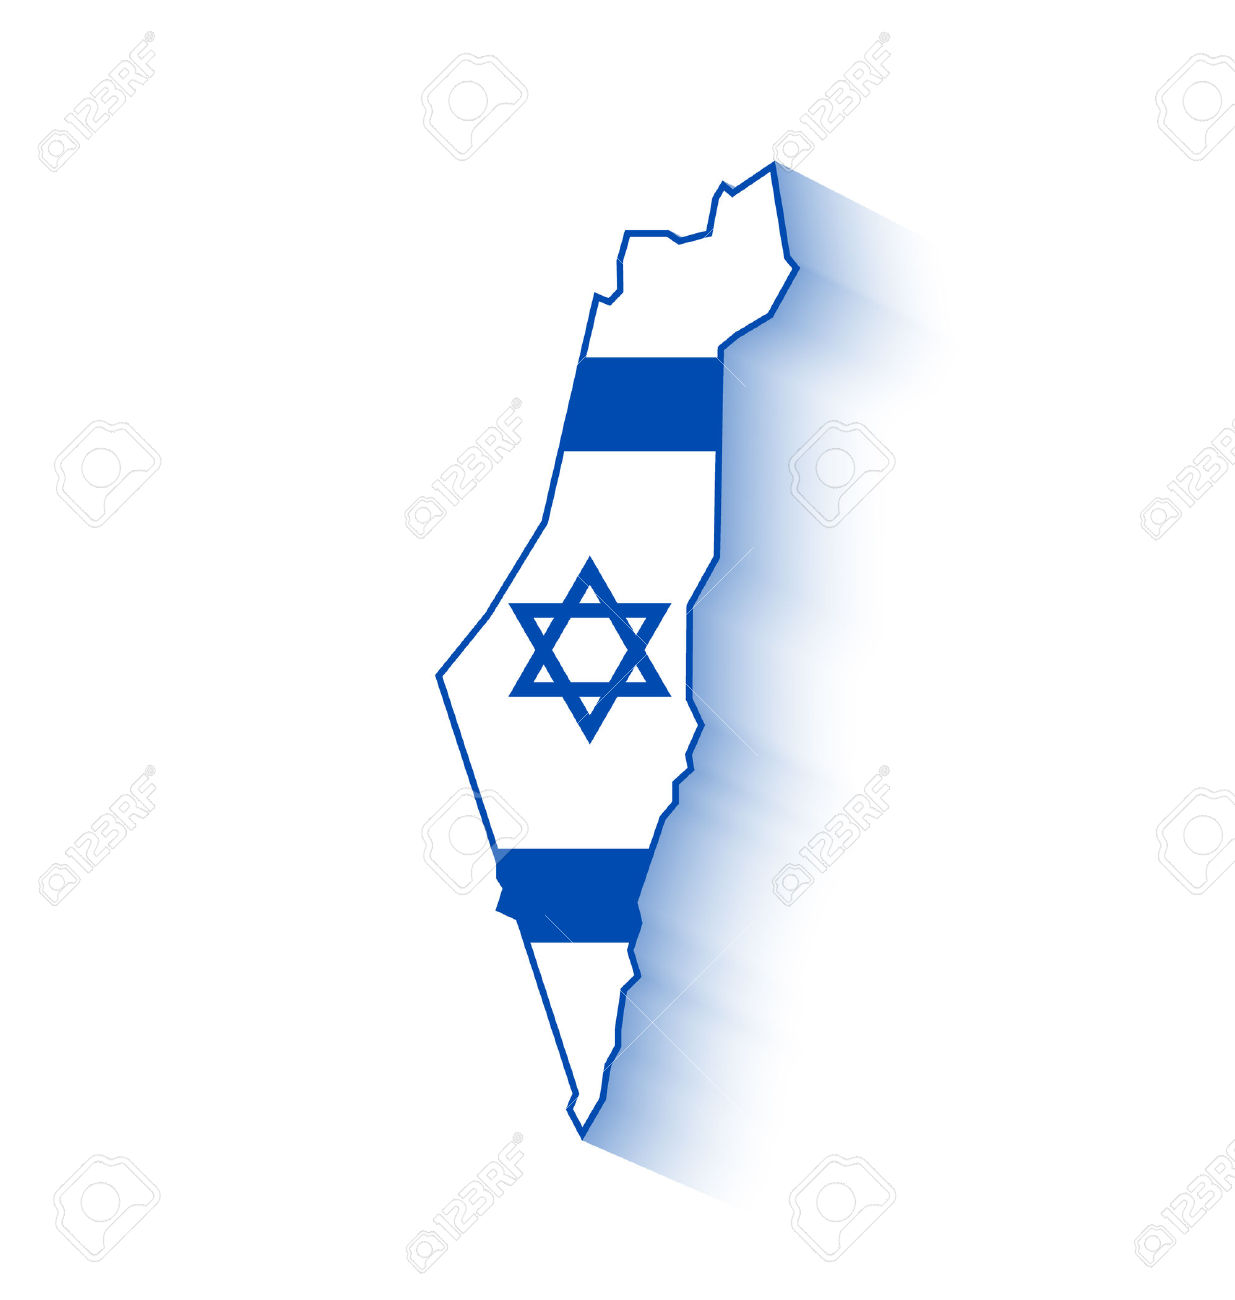 Israel Map Clipart.